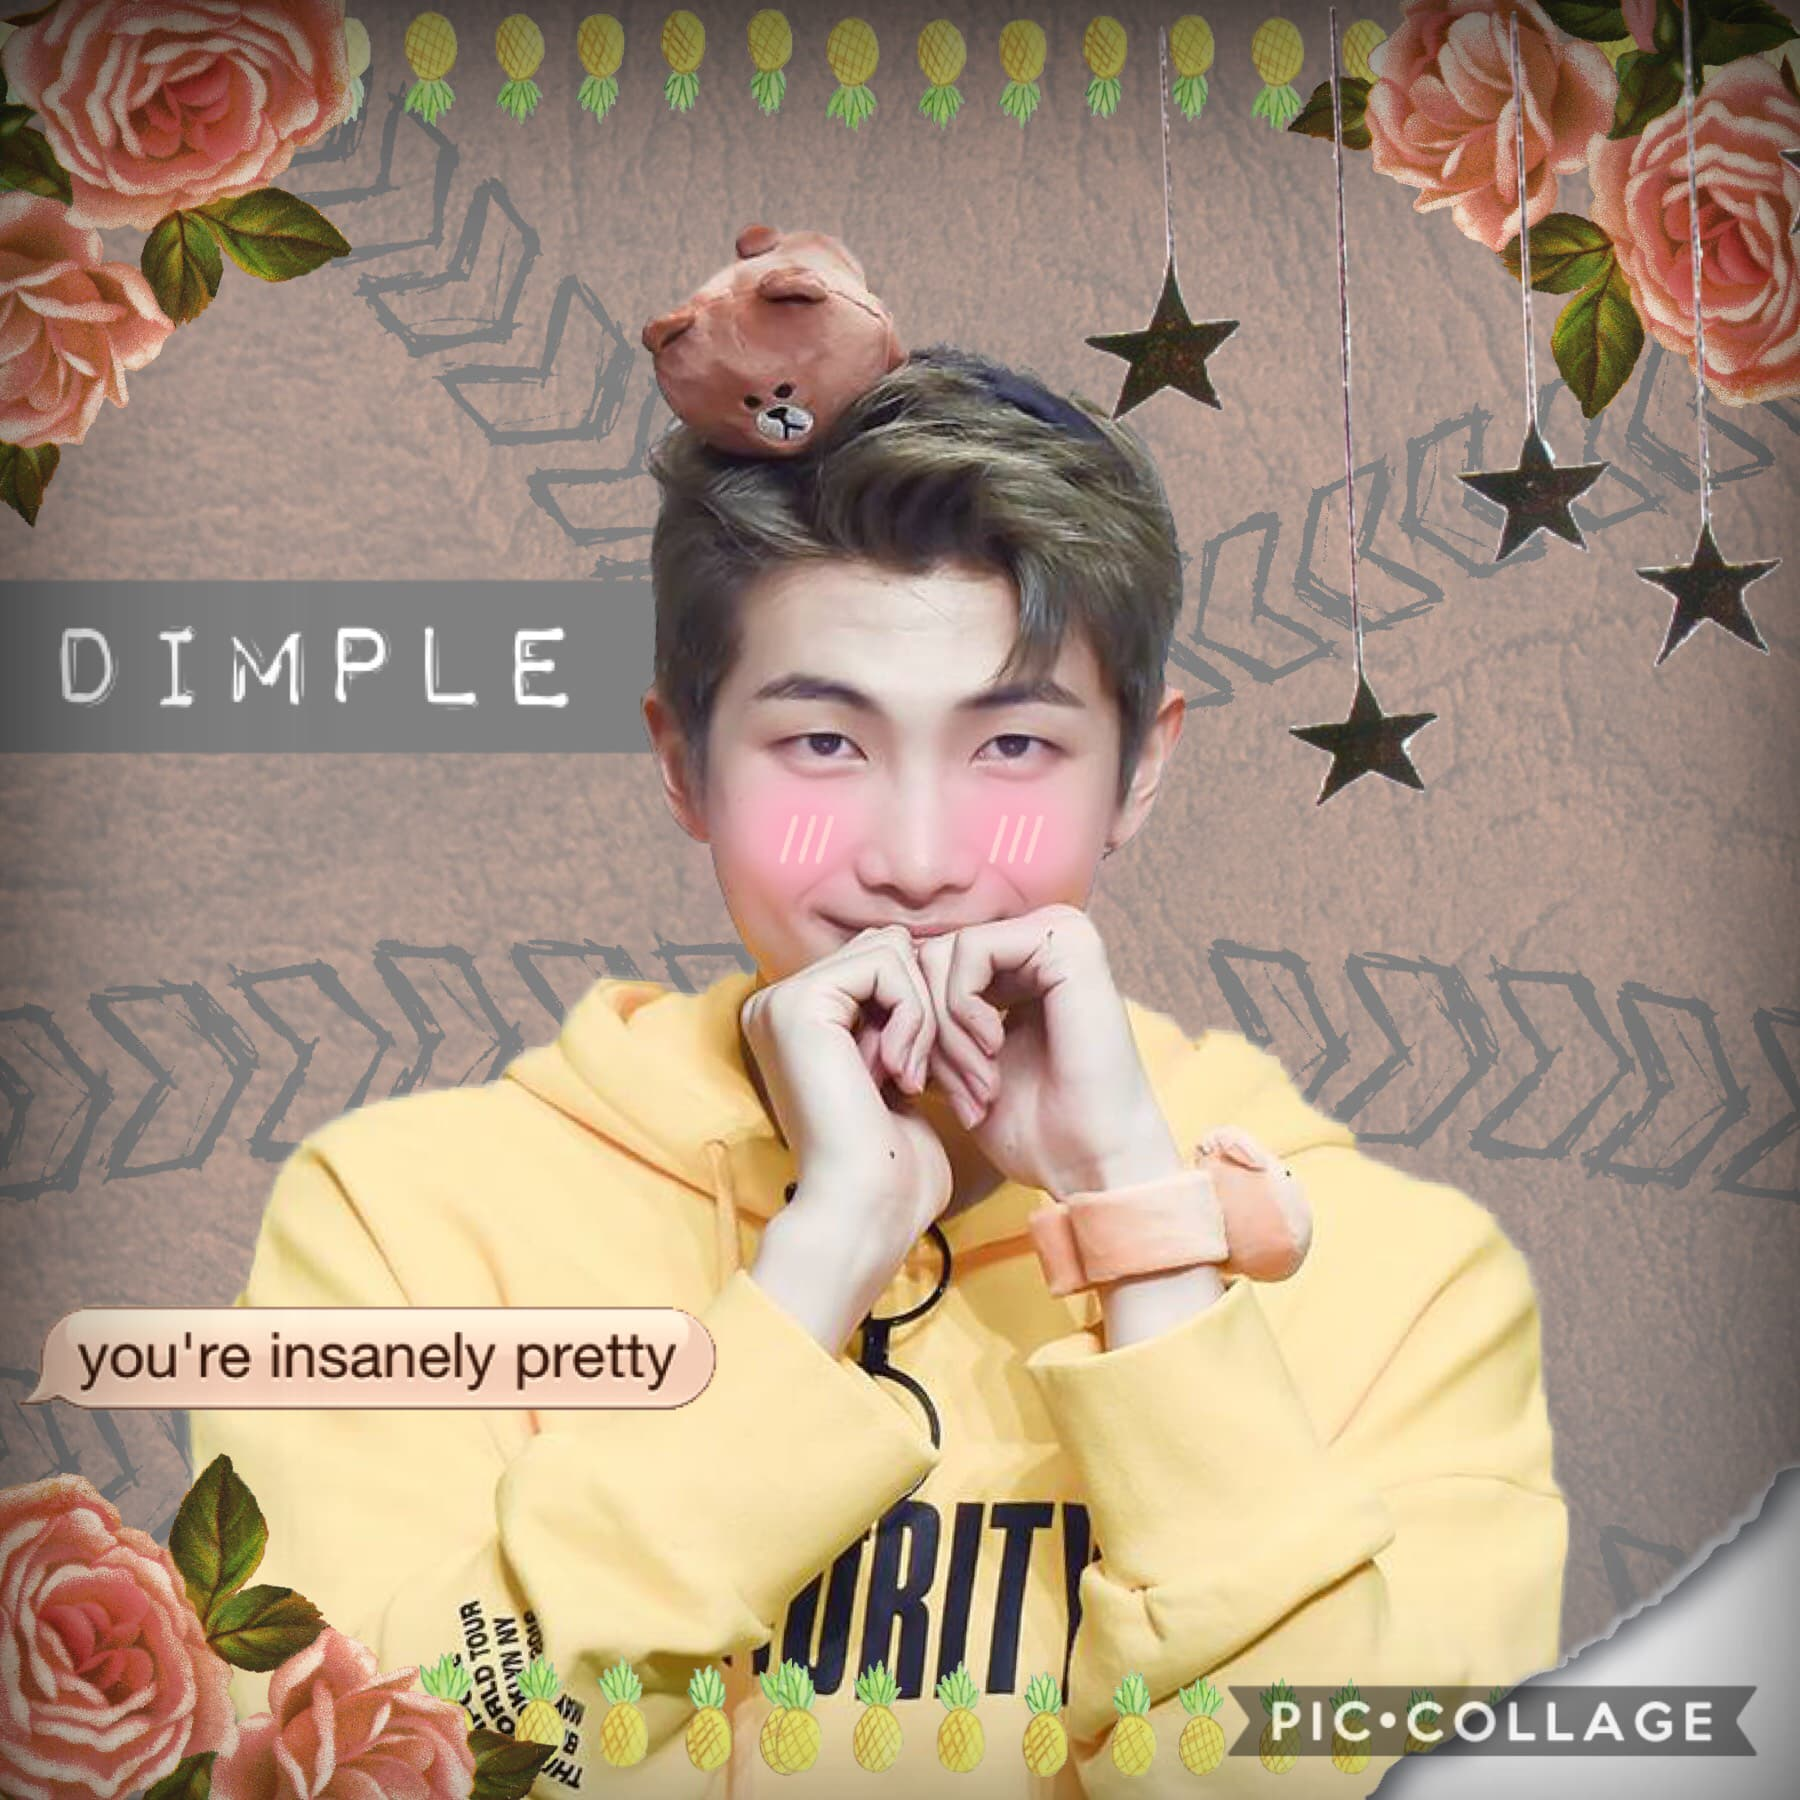 Old style is bAcK woooOoohOooO okay so waht I'll do is post memesss every now and then but delete later so I can post some of my actual collages. My shoutout will come out todayyyy I love u all so muchhhhh 💛🧡💚💙❤️